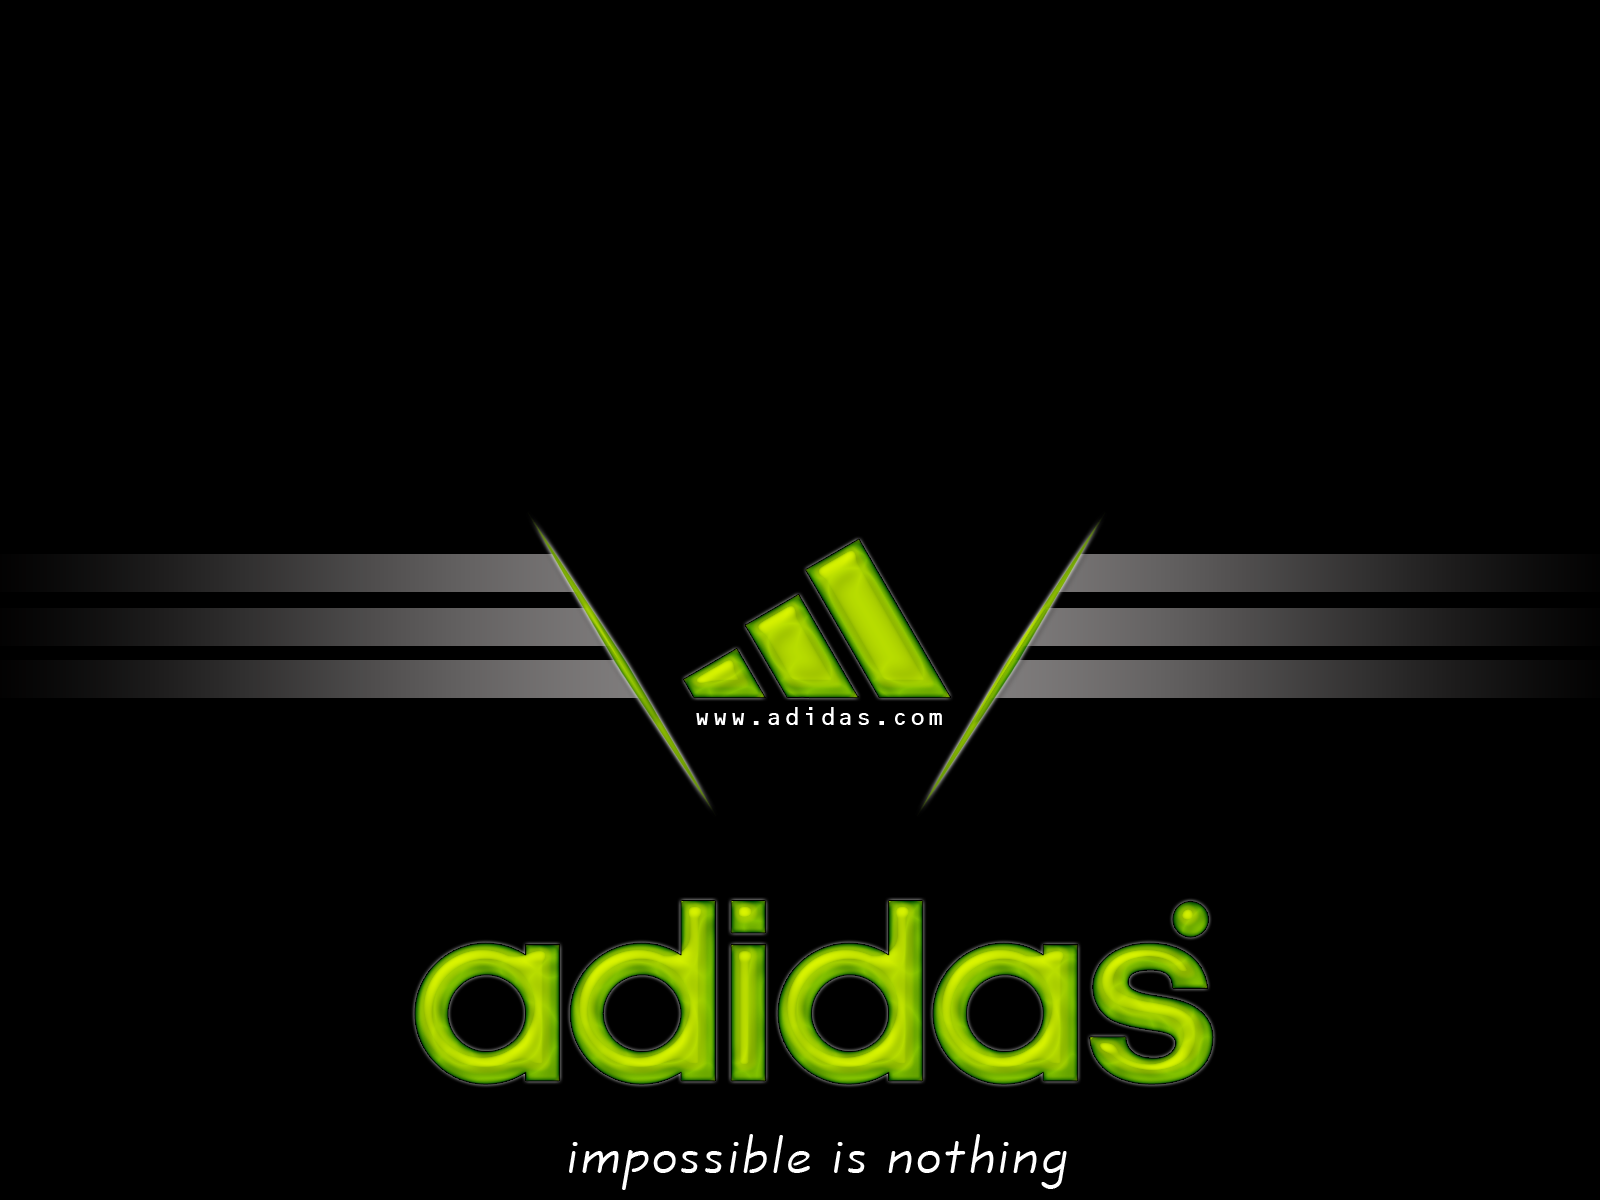 Adidas Logo Wallpapers 2015 1600x1200